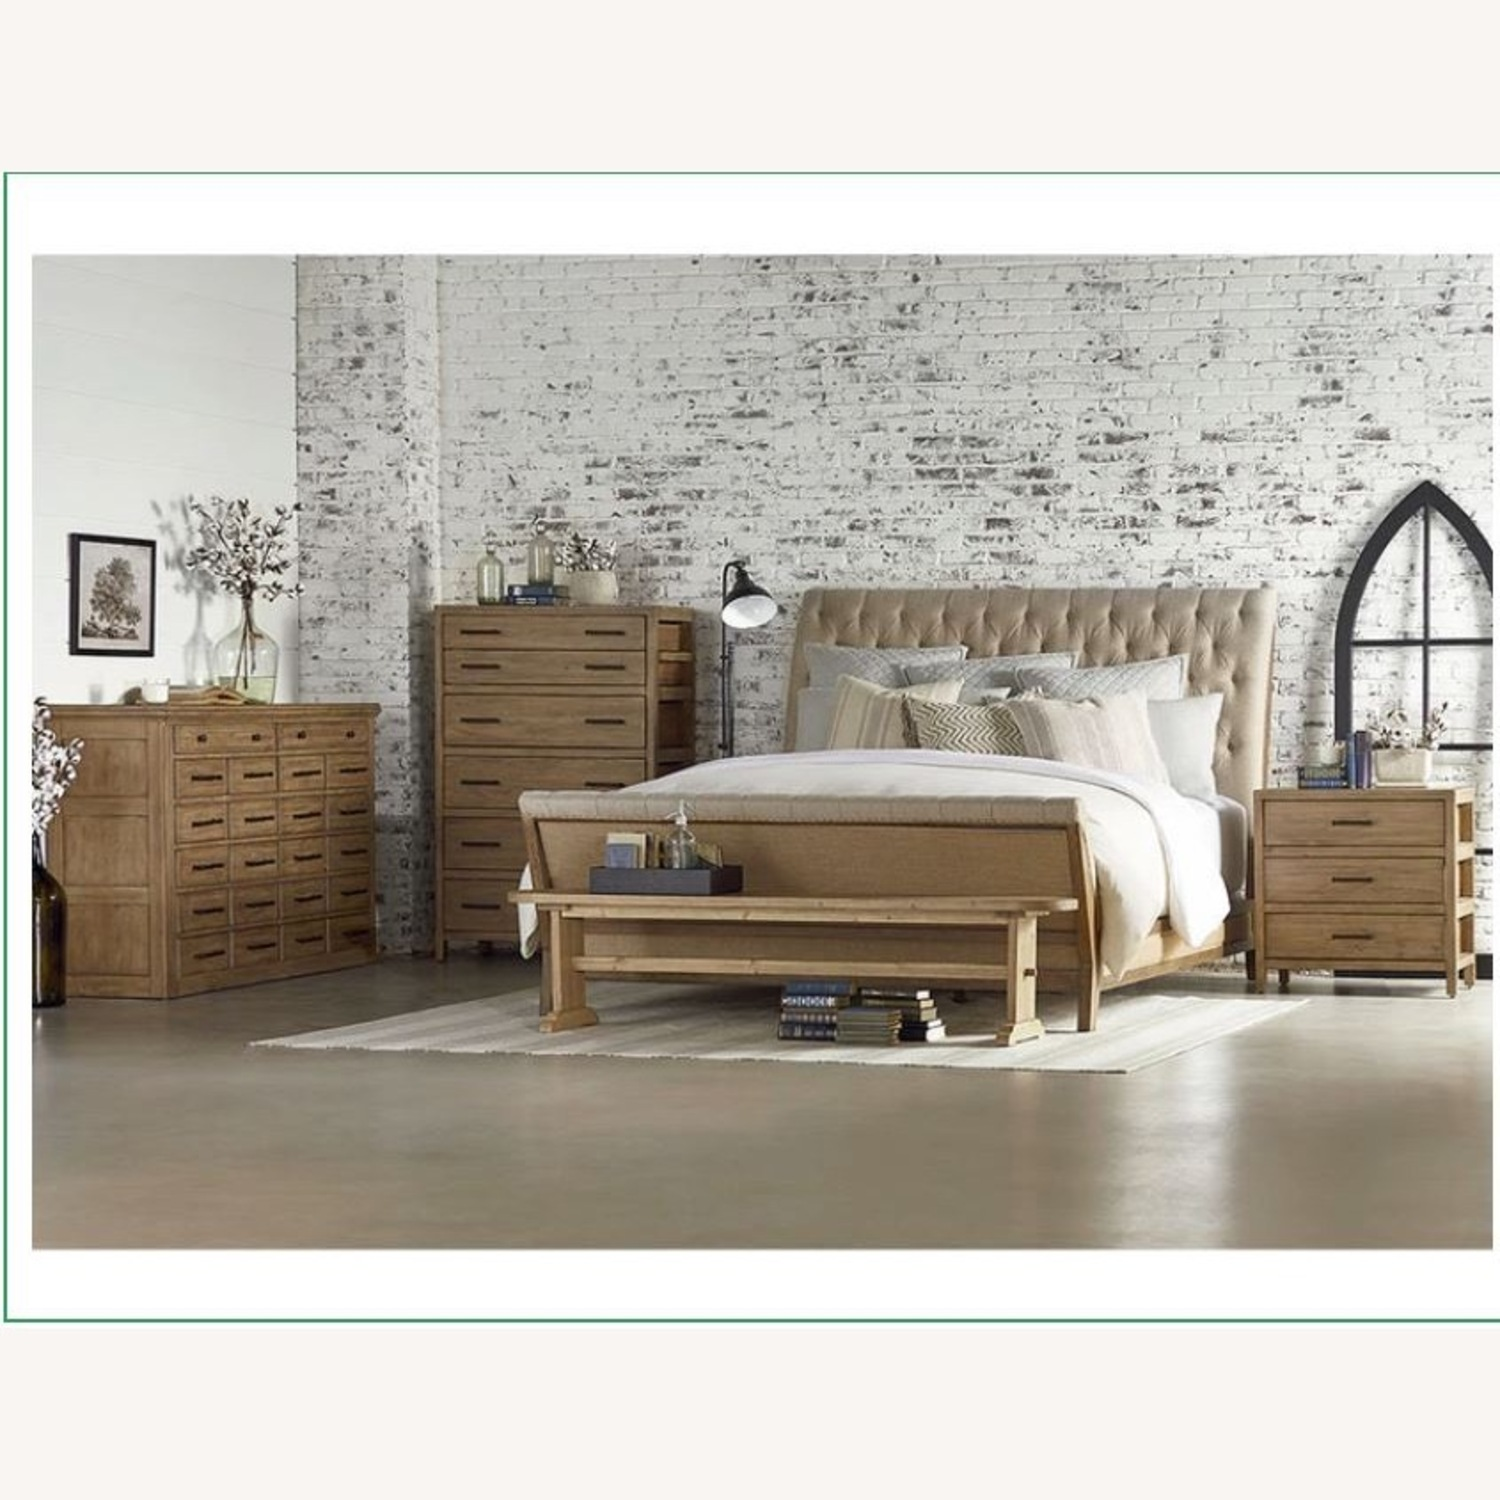 Queen Bed Upholstered Sleigh Bed Natural Wood - image-2